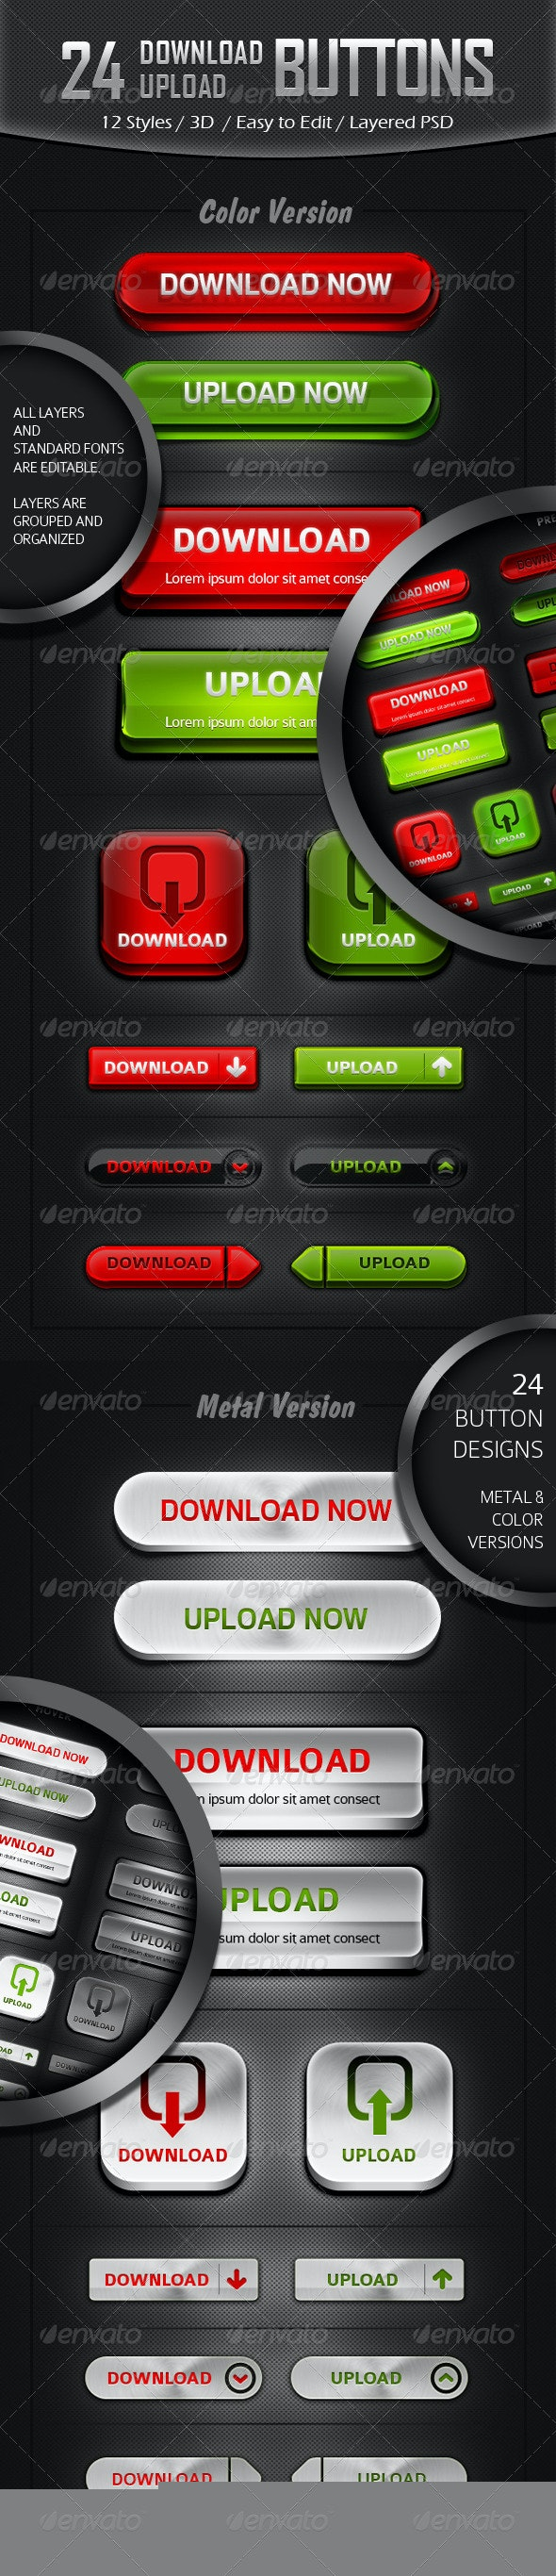 12 Styles - Download/ Upload Button Designs - Buttons Web Elements